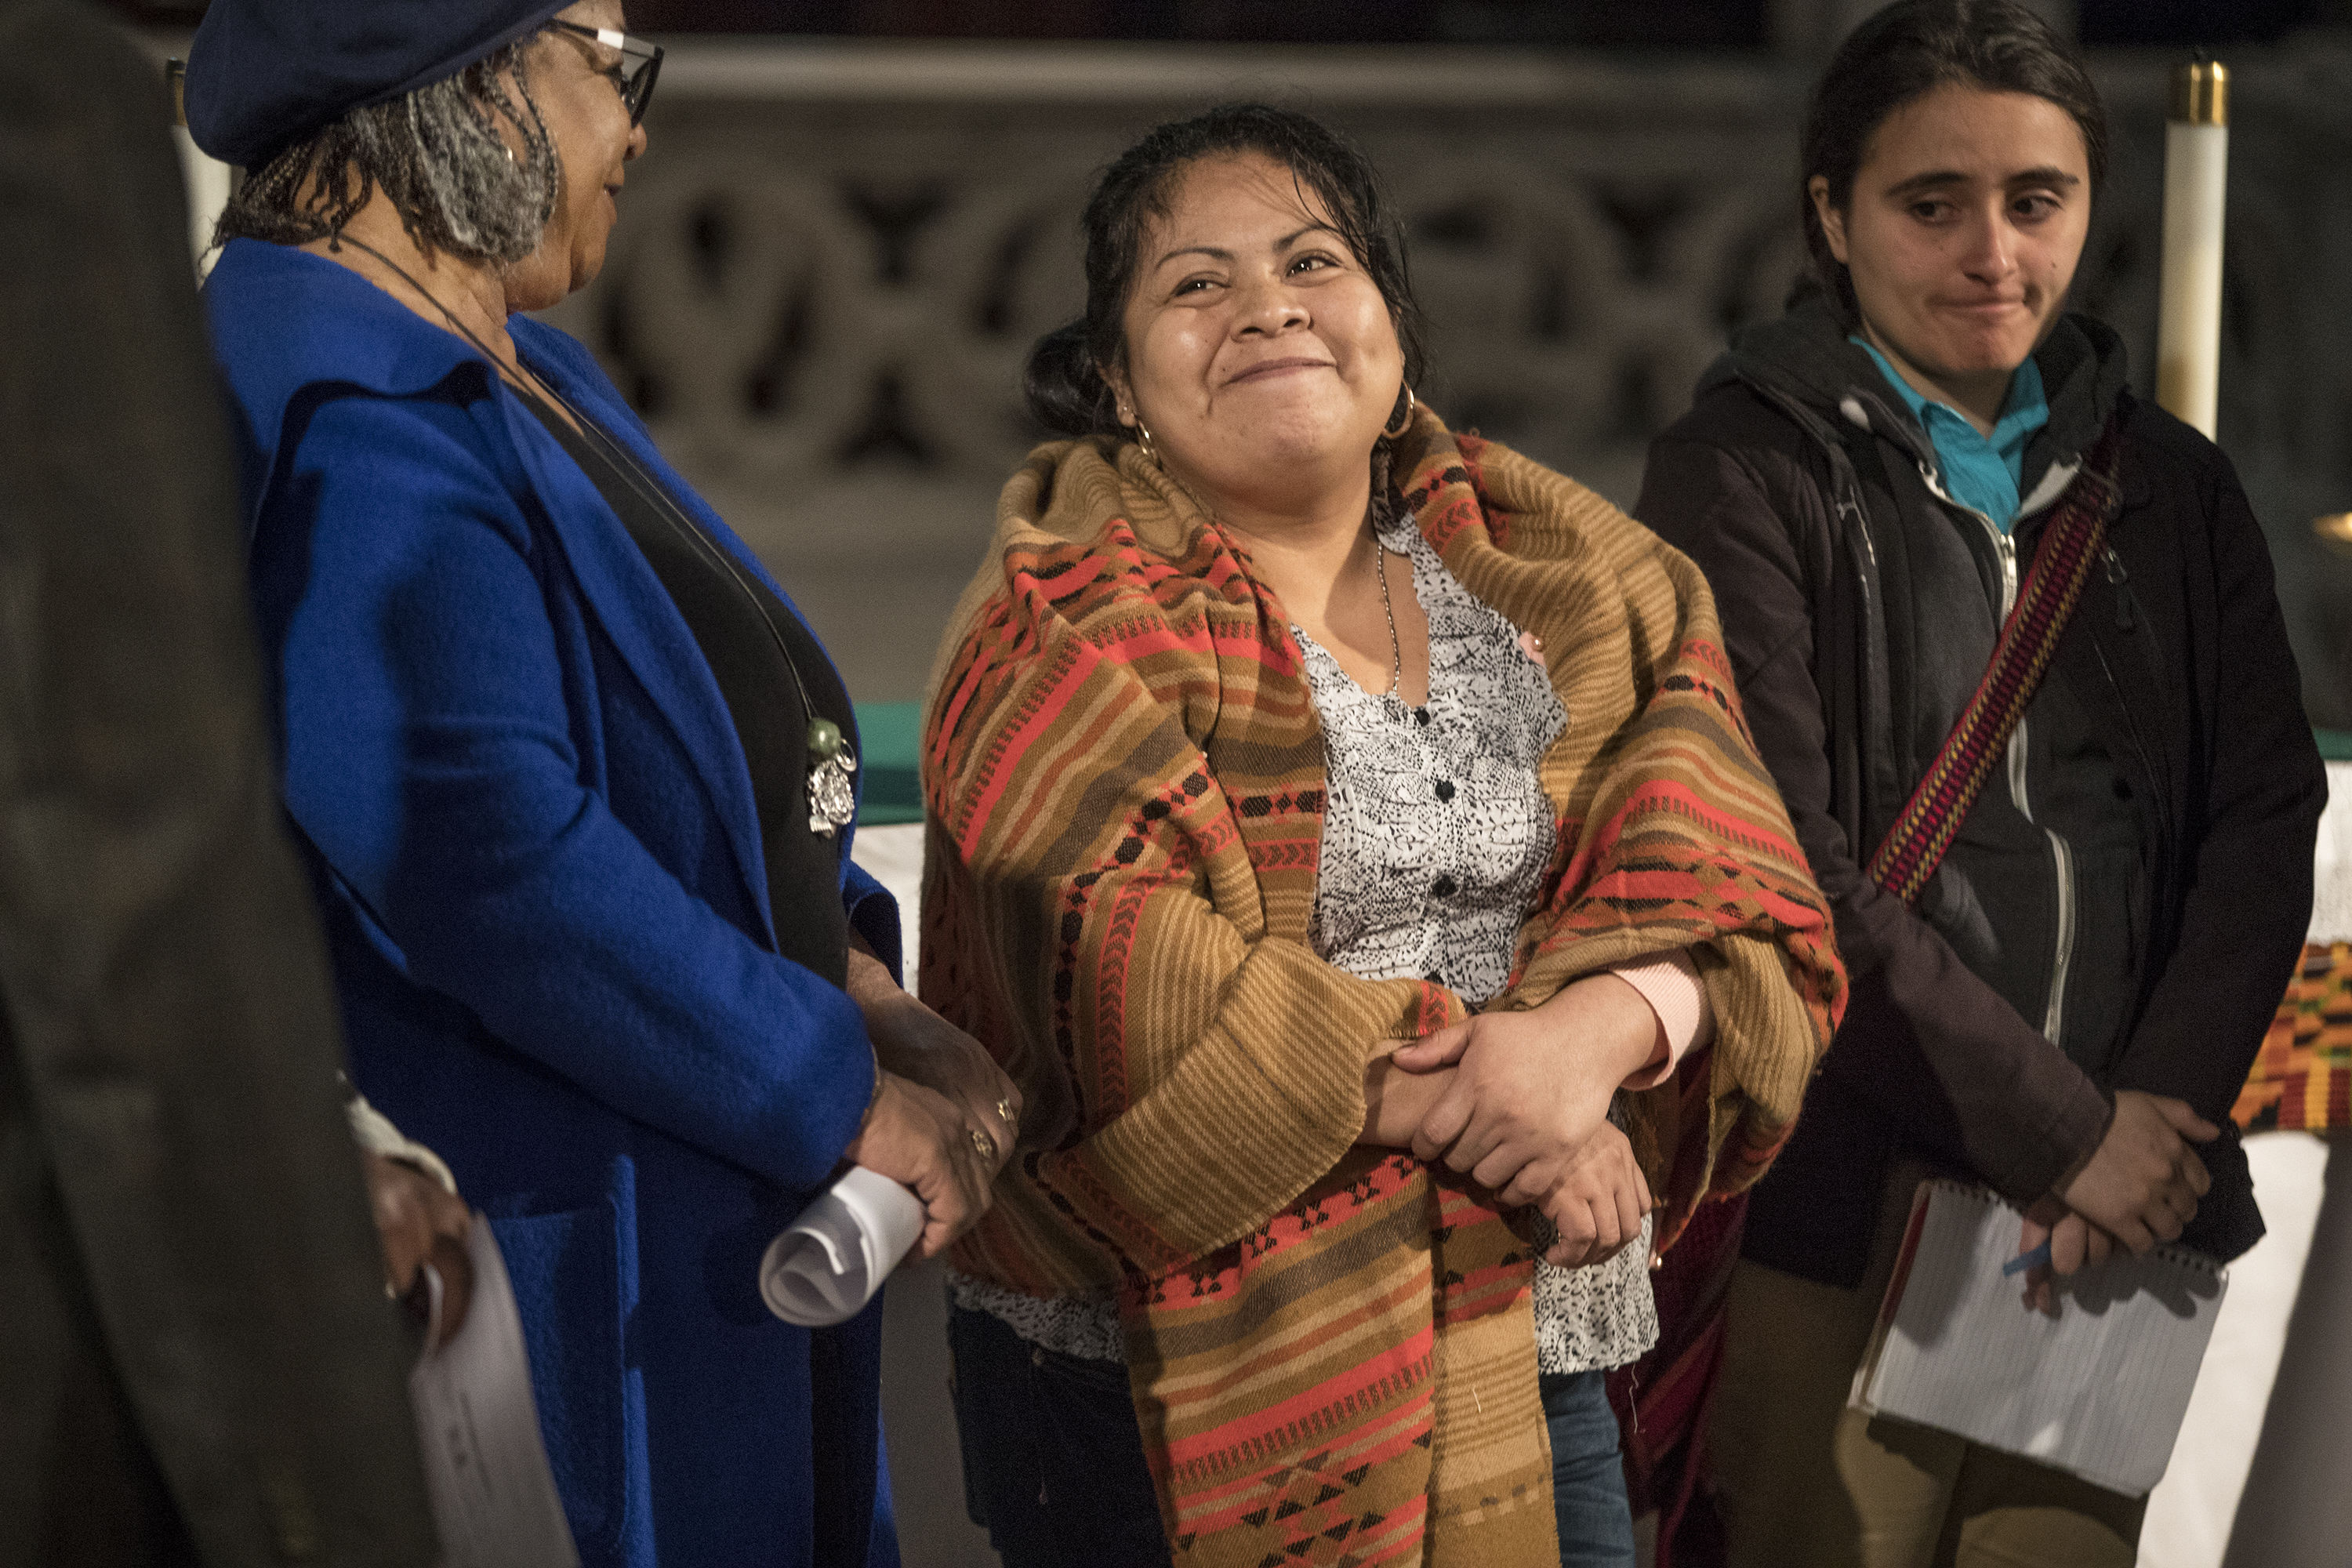 Carmela Apolonio Hernandez, center, smiles as speakers support her cause for immigration relief during a press conference at the Church of the Advocate in April.